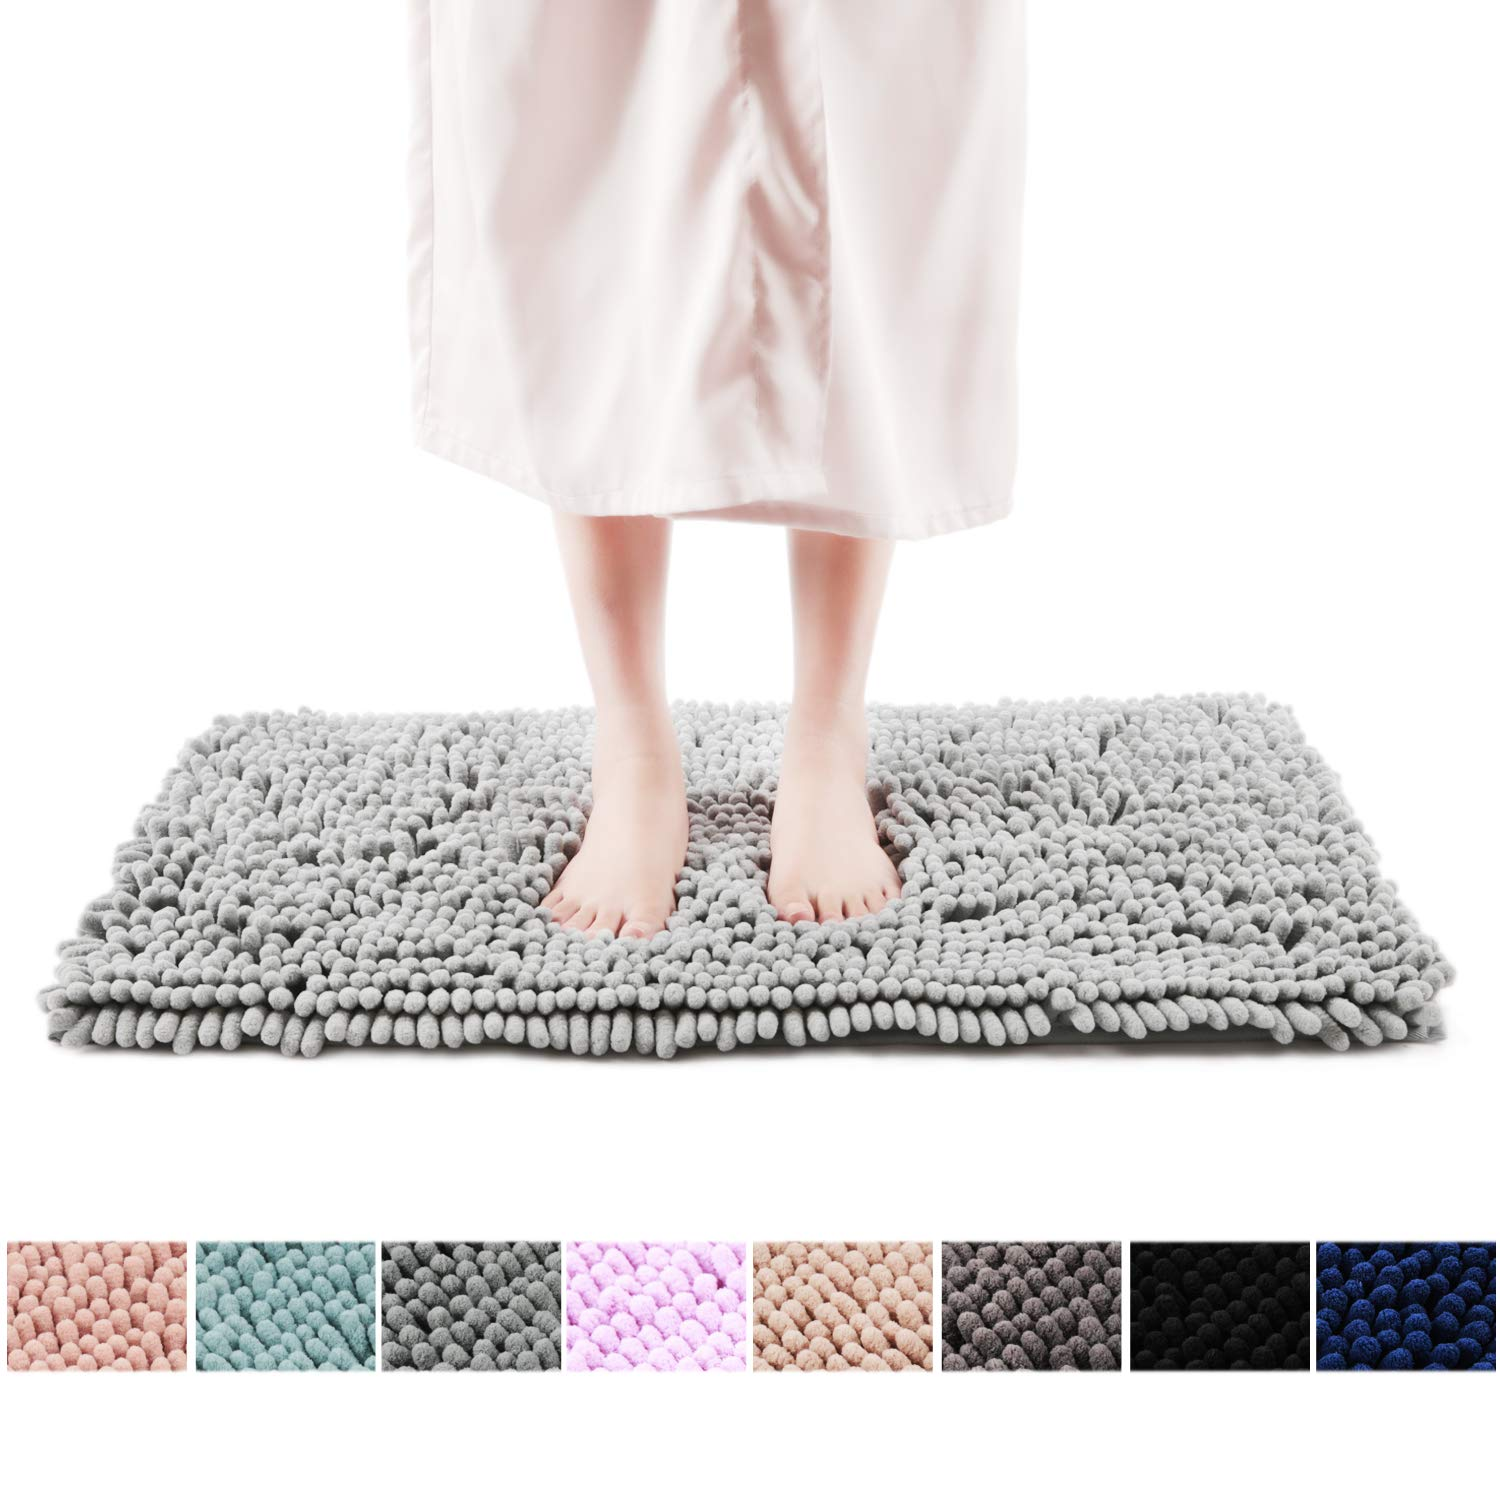 20 x 32, Light Gray FRESHMINT Chenille Bath Rugs Extra Soft Fluffy and Absorbent Microfiber Shag Rug Non-Slip Runner Carpet for Tub Bathroom Shower Mat Machine-Washable Durable Thick Area Rugs